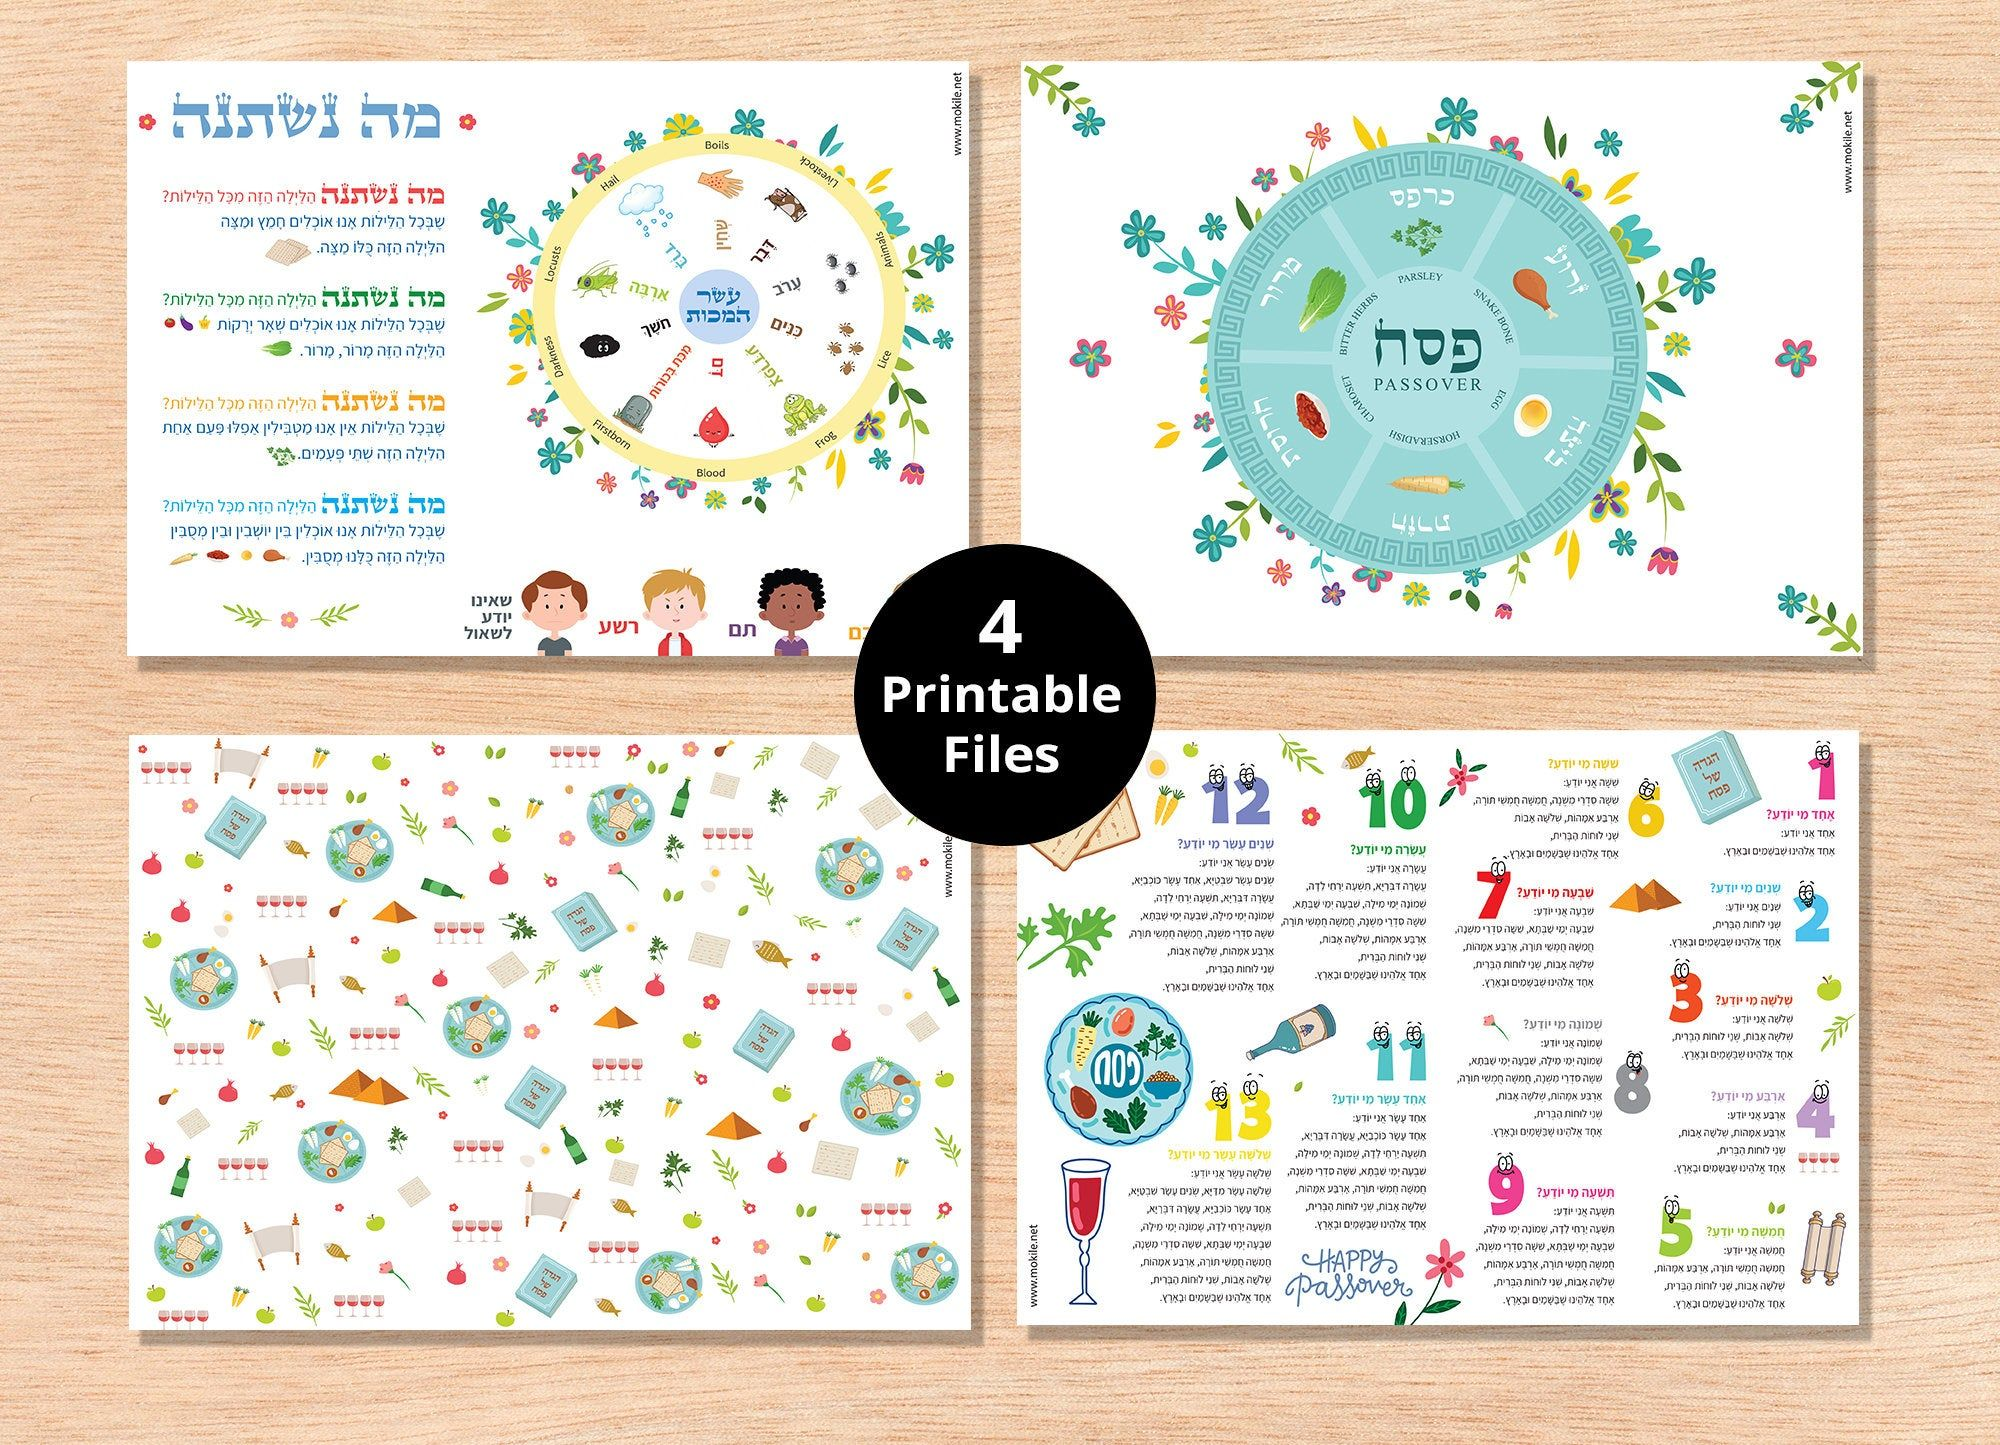 Passover פסח Pesach Passover Printables Passover Printable A Seder For Young Children Place Mat Set Pesach For Passover Printables Etsy Printables Pesach [ 1445 x 2000 Pixel ]